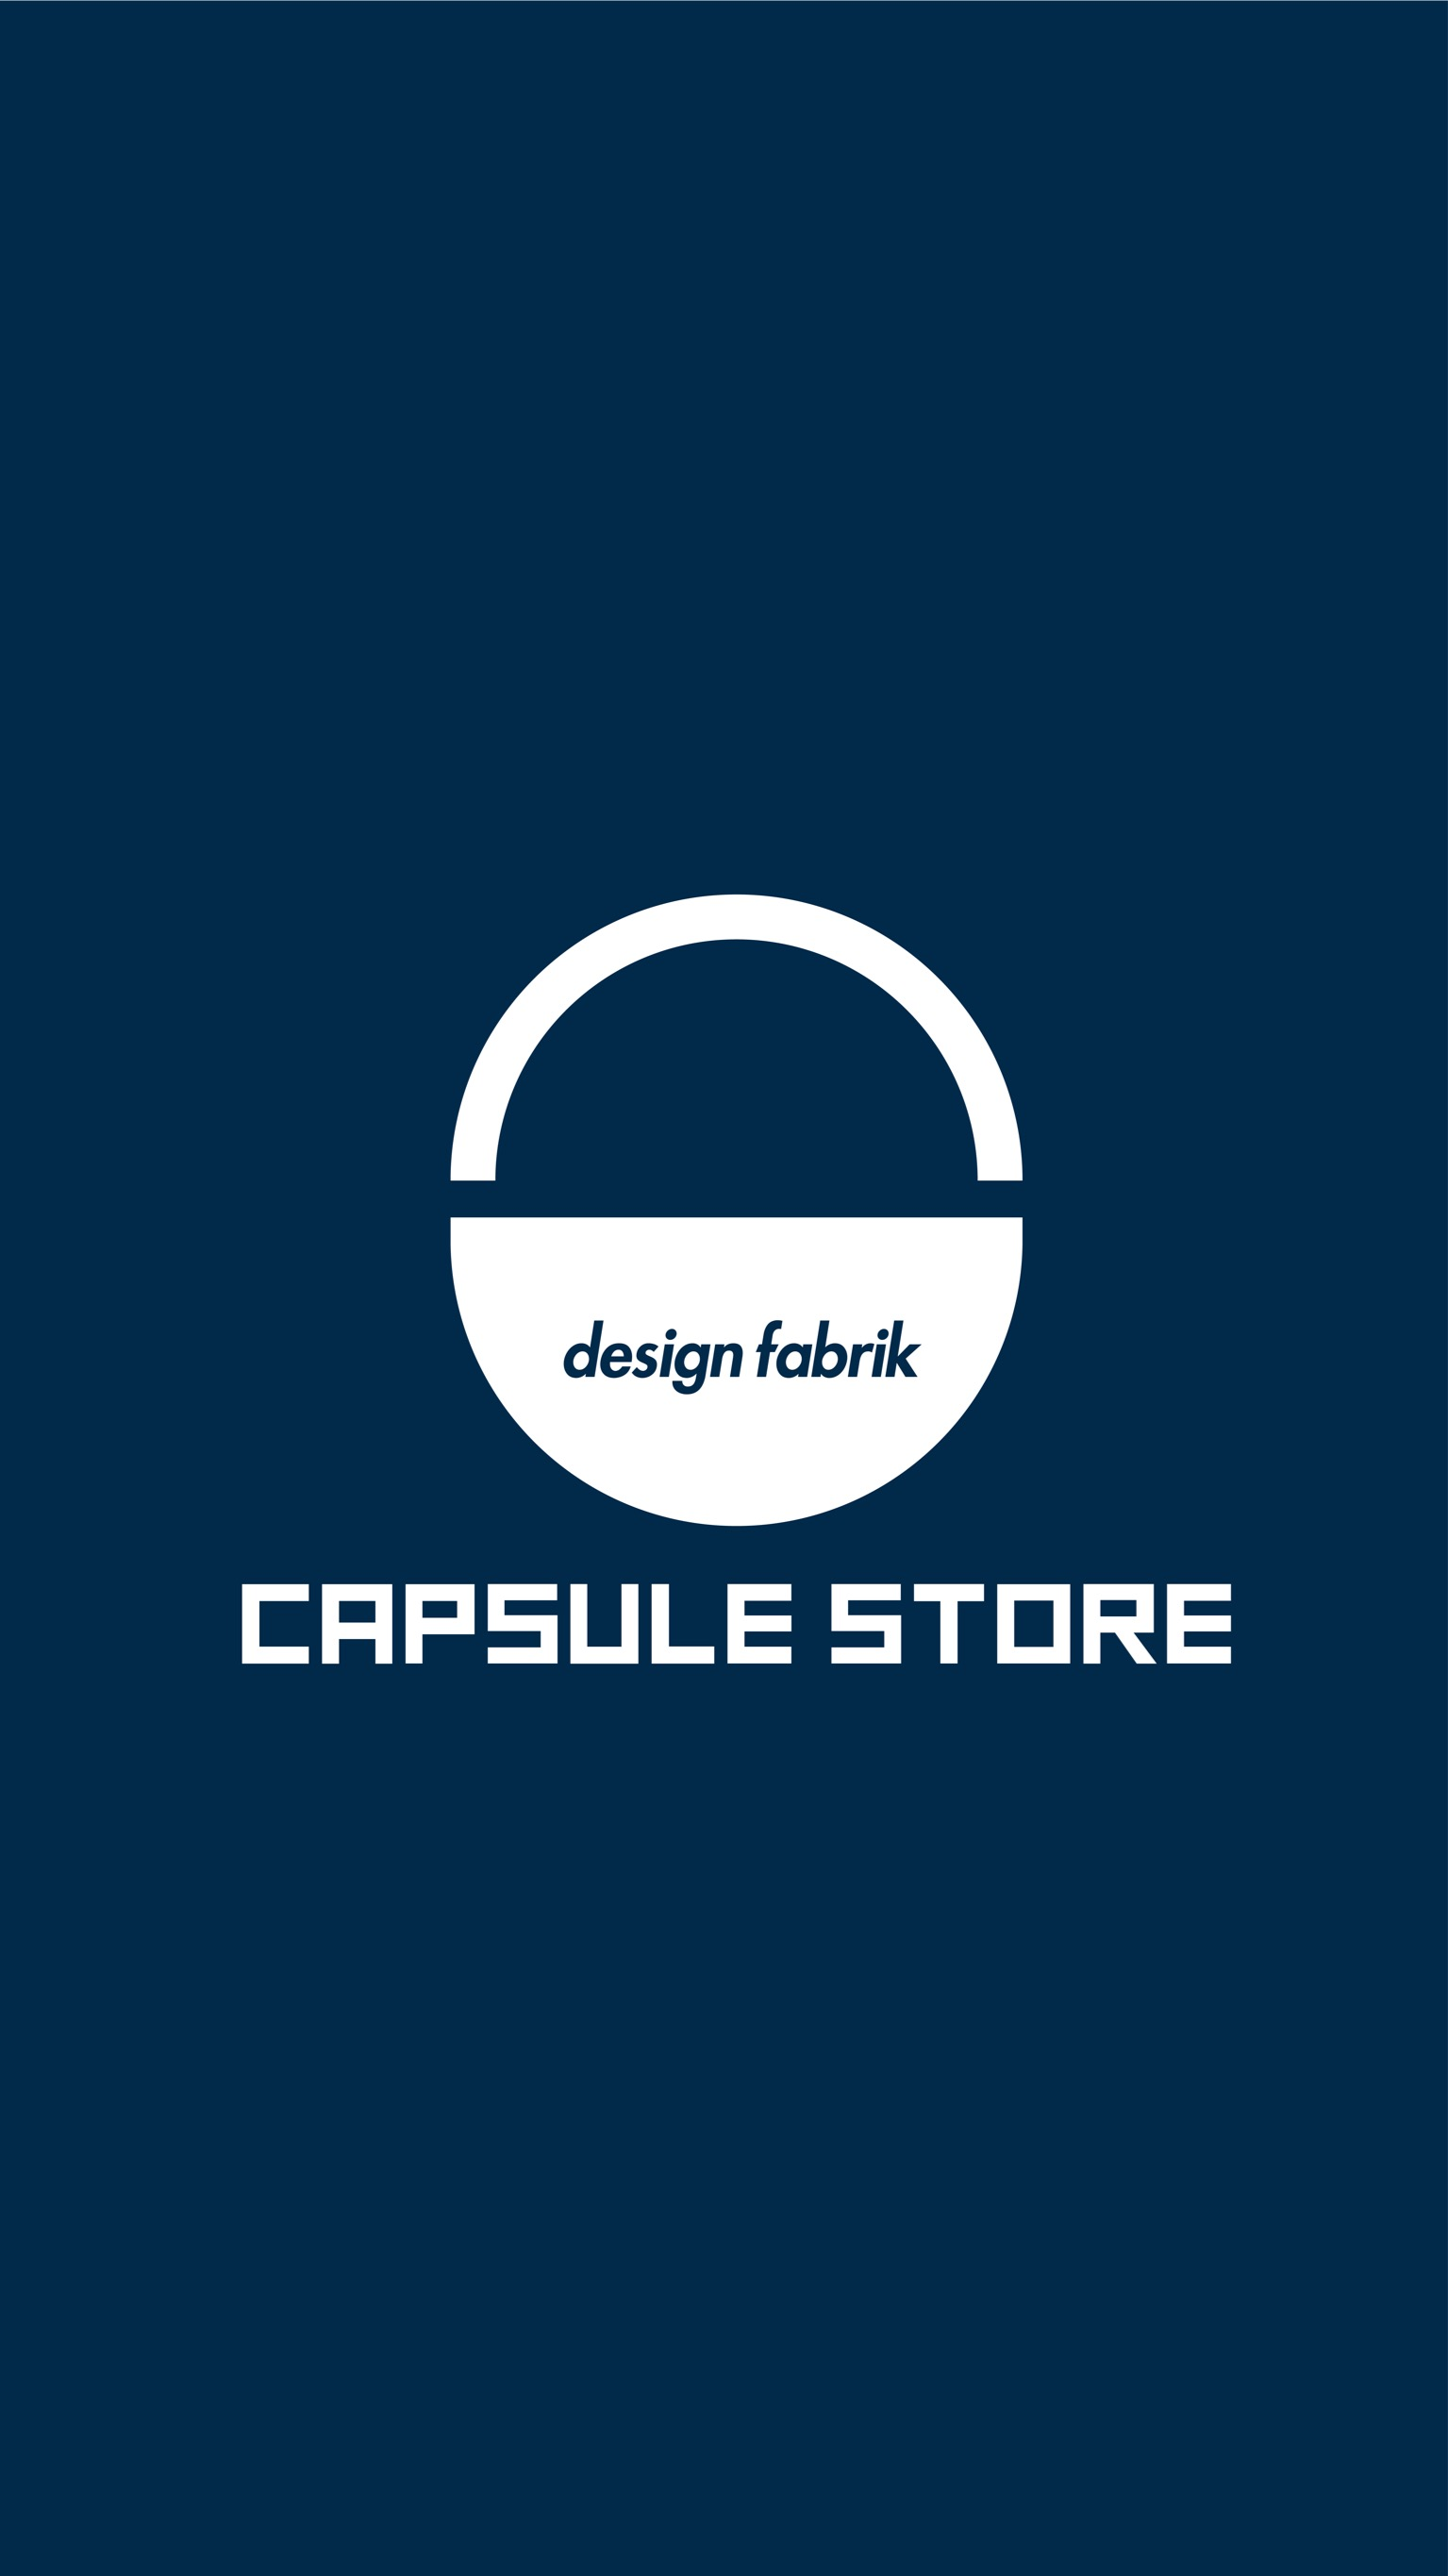 CAPSULE STORE in DVD RECORDS